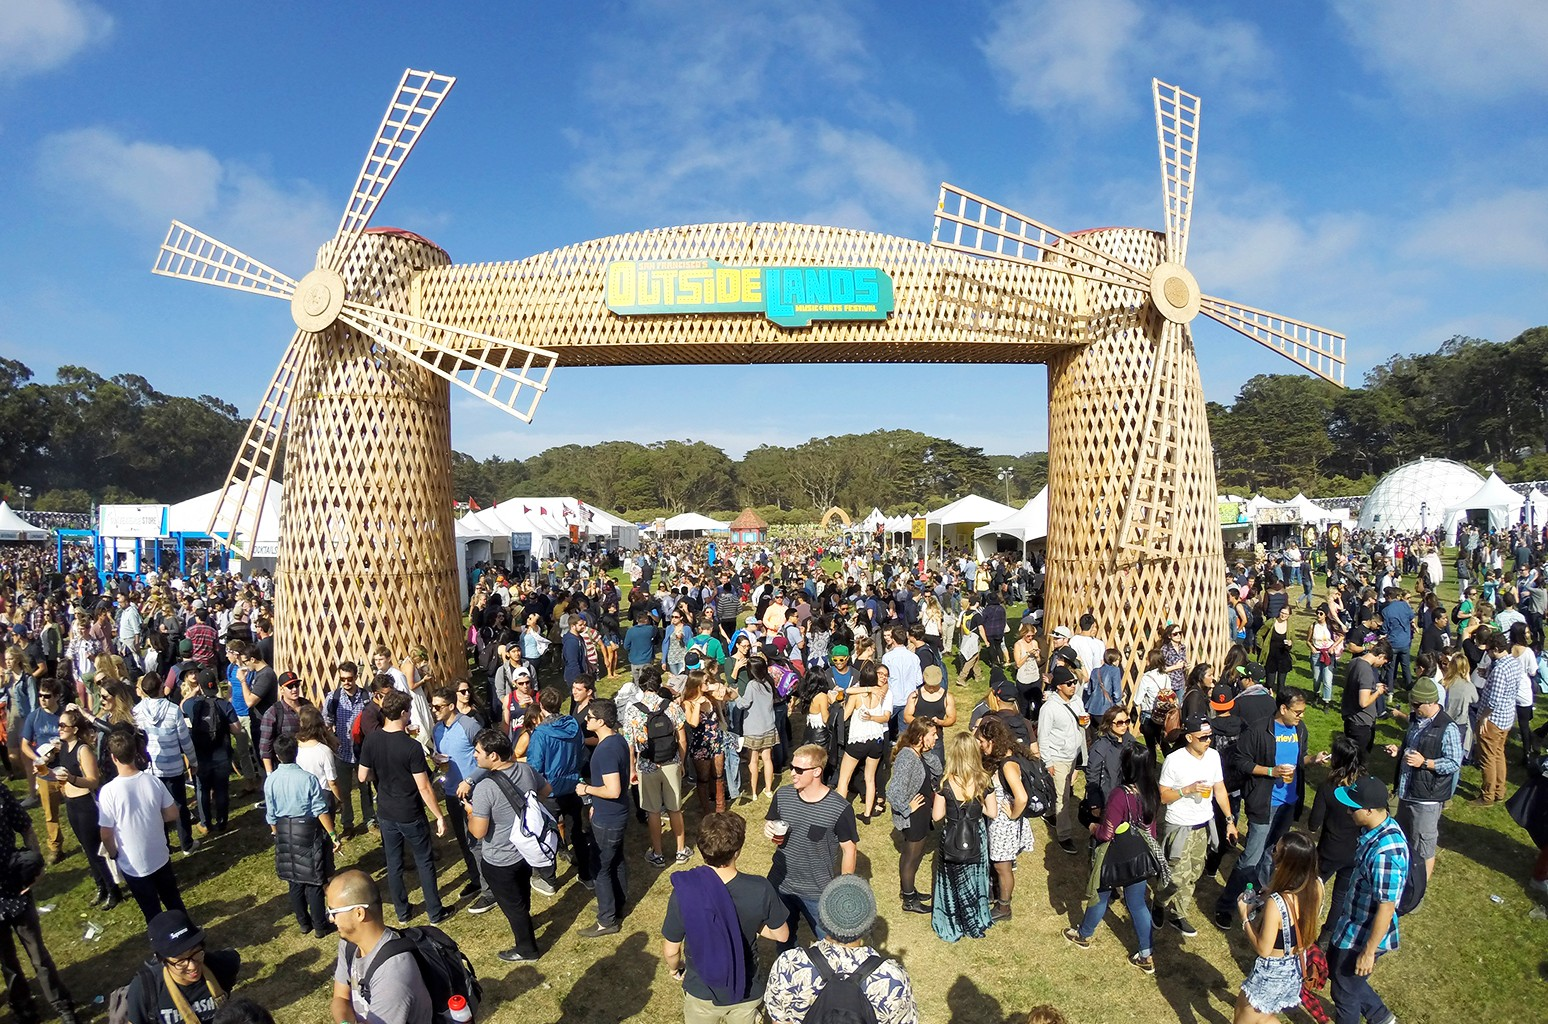 A general view of the atmosphere during day 1 of the 2014 Outside Lands Music and Arts Festival at Golden Gate Park on Aug. 8, 2014 in San Francisco.